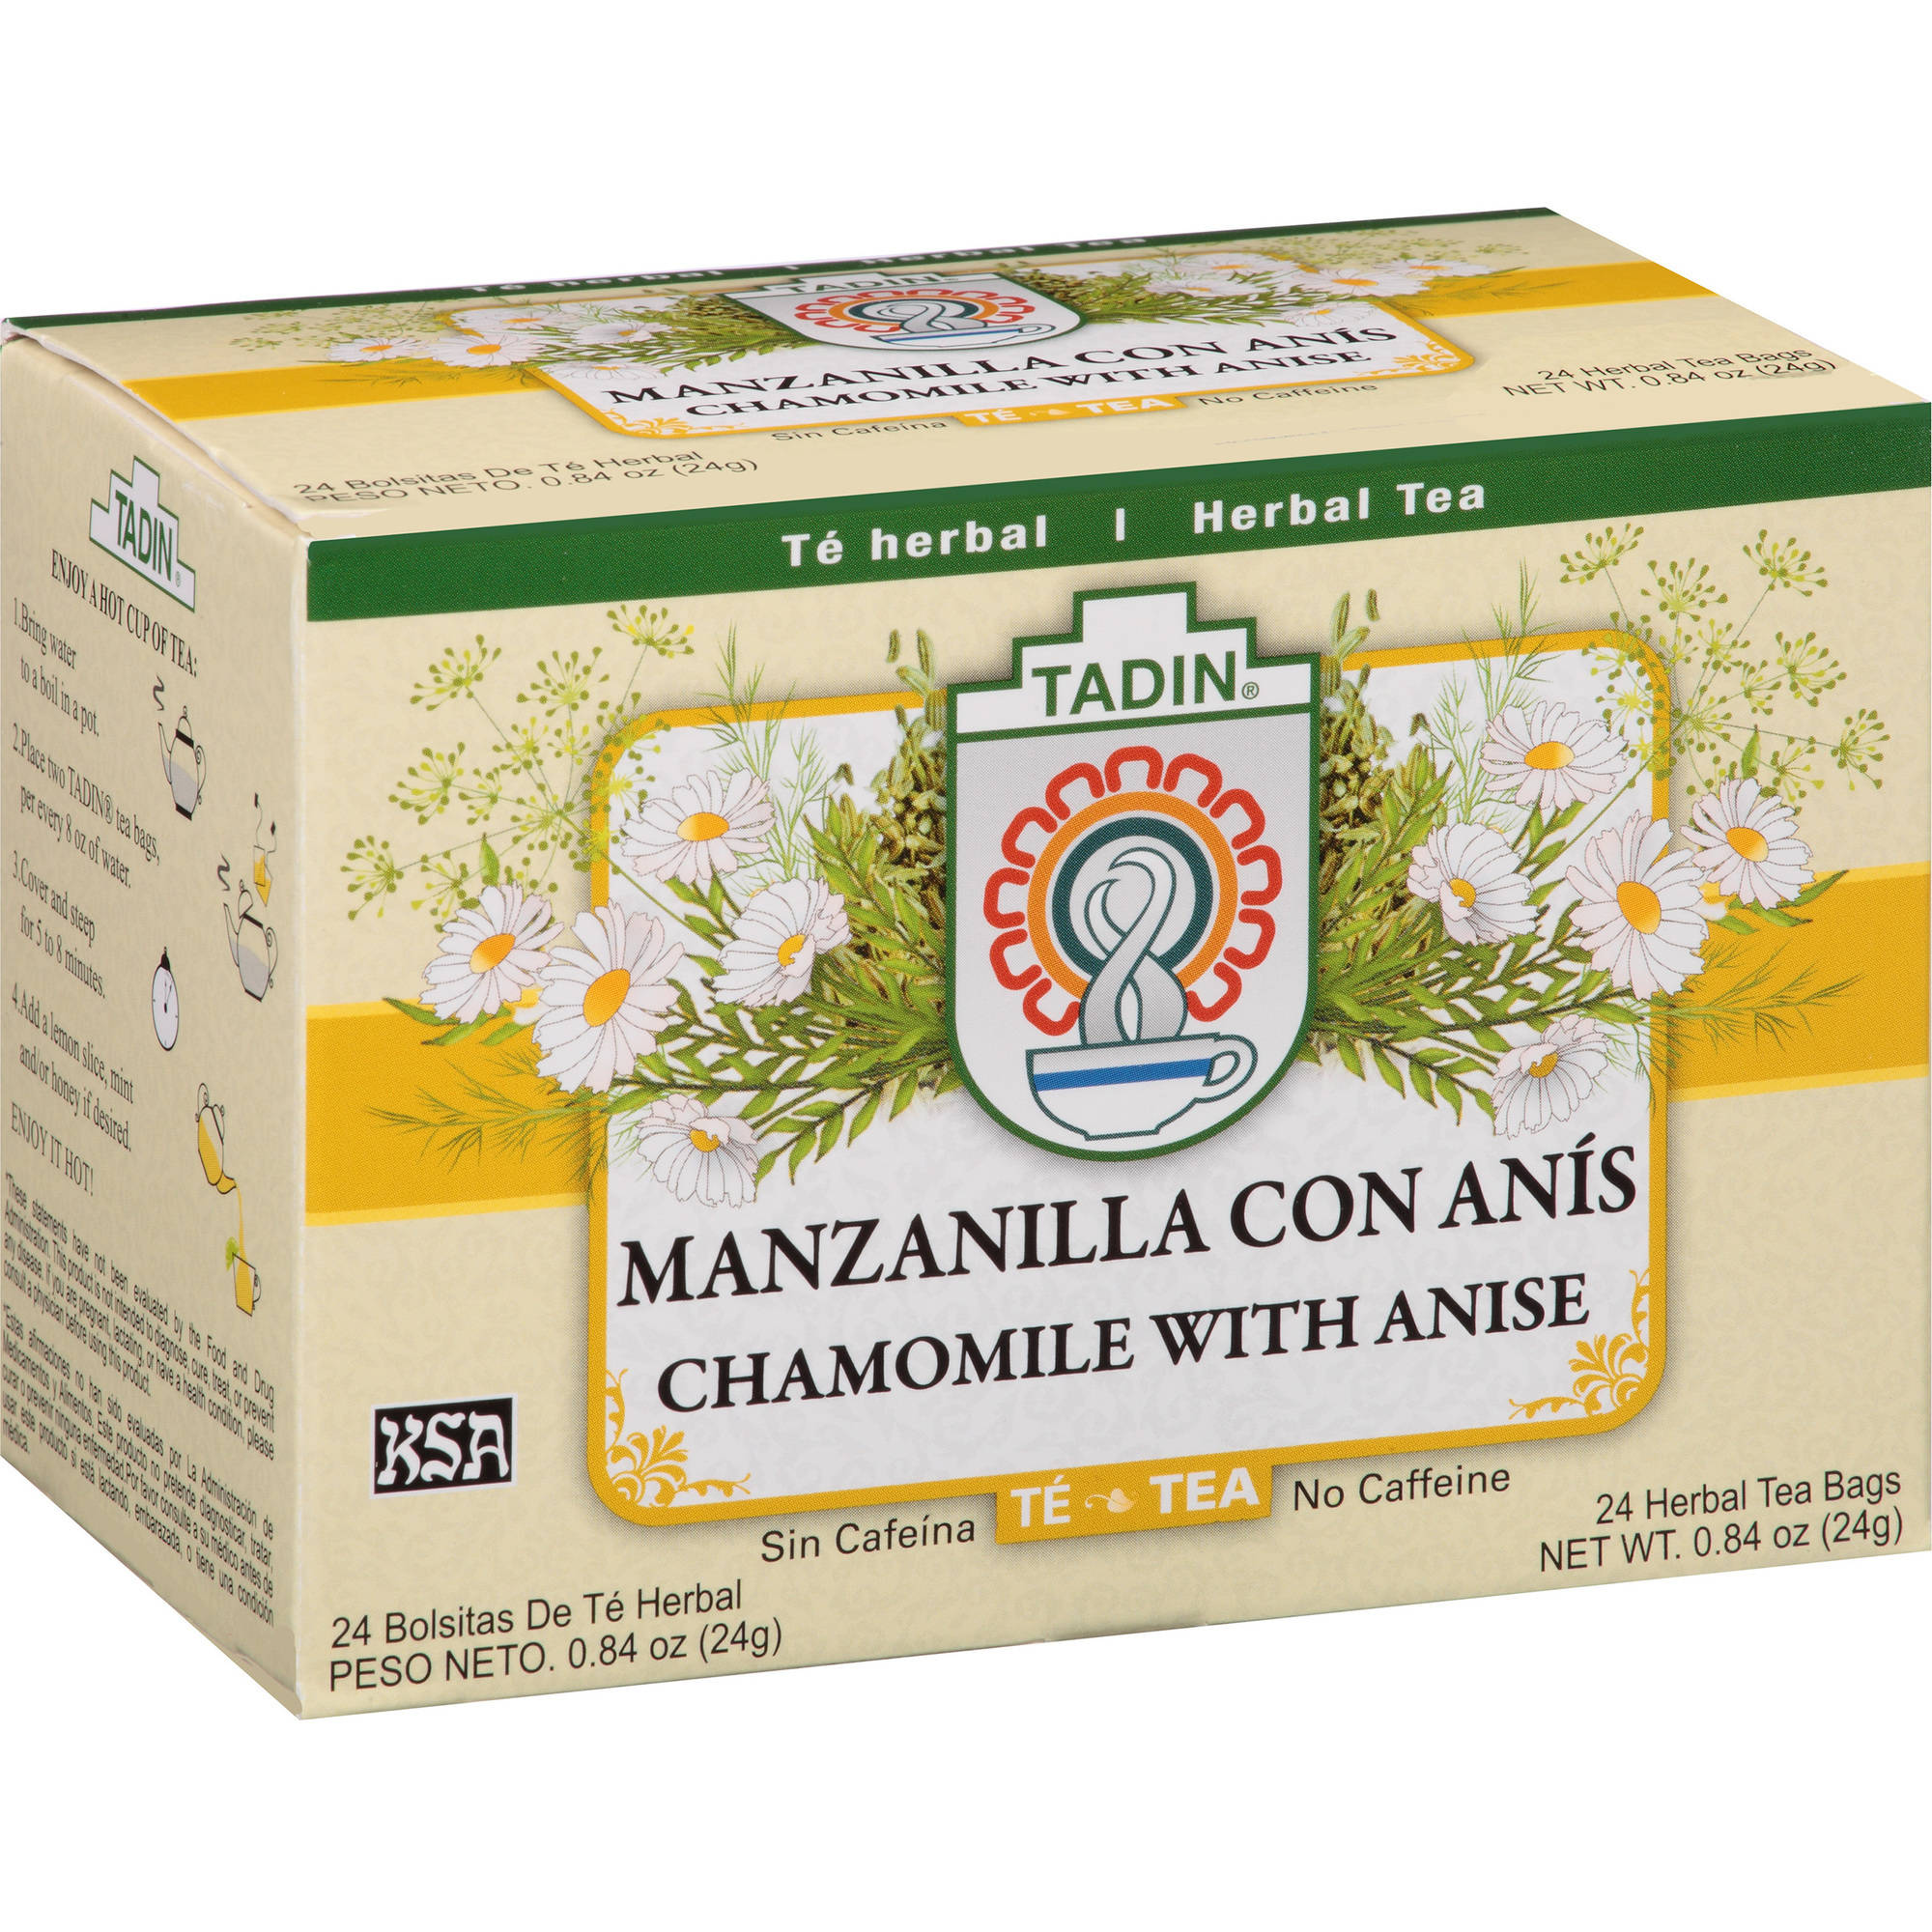 Tadin Chamomile with Anise Herbal Tea Bags, 24 count, 0.84 oz